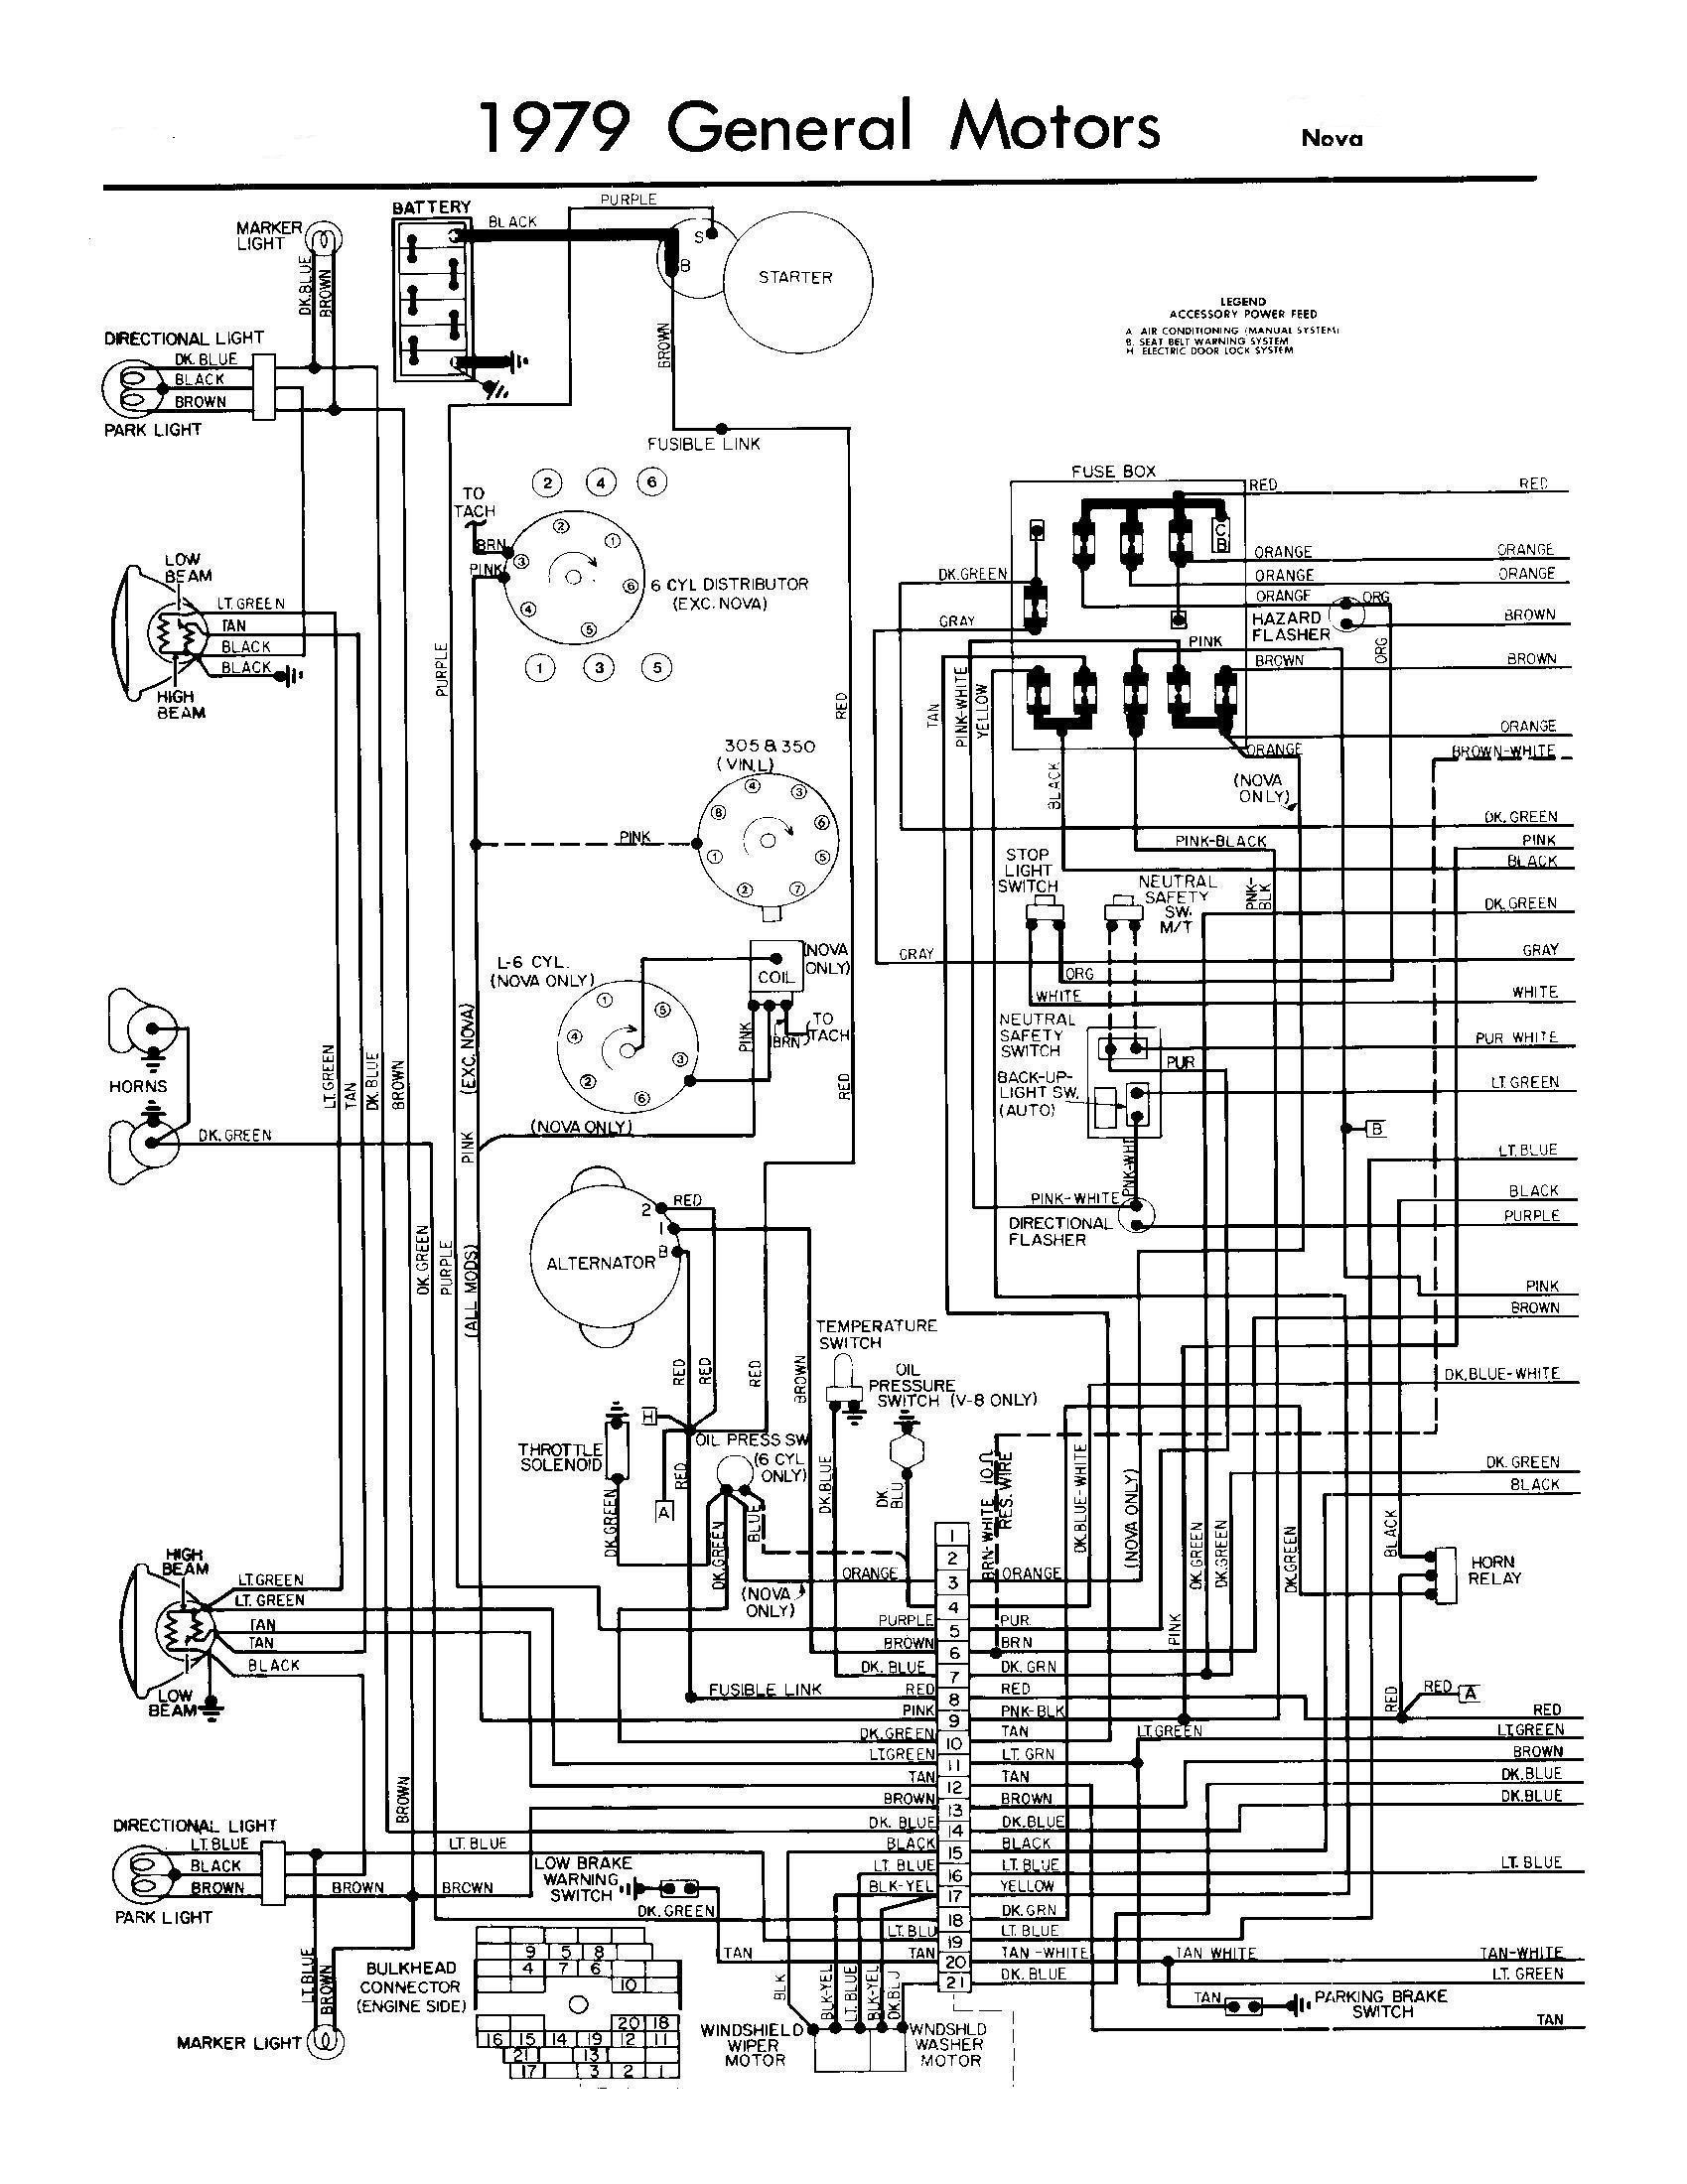 2005 Dodge Grand Caravan Fuse Box Diagram Trusted Wiring 1996 Panel House 2008